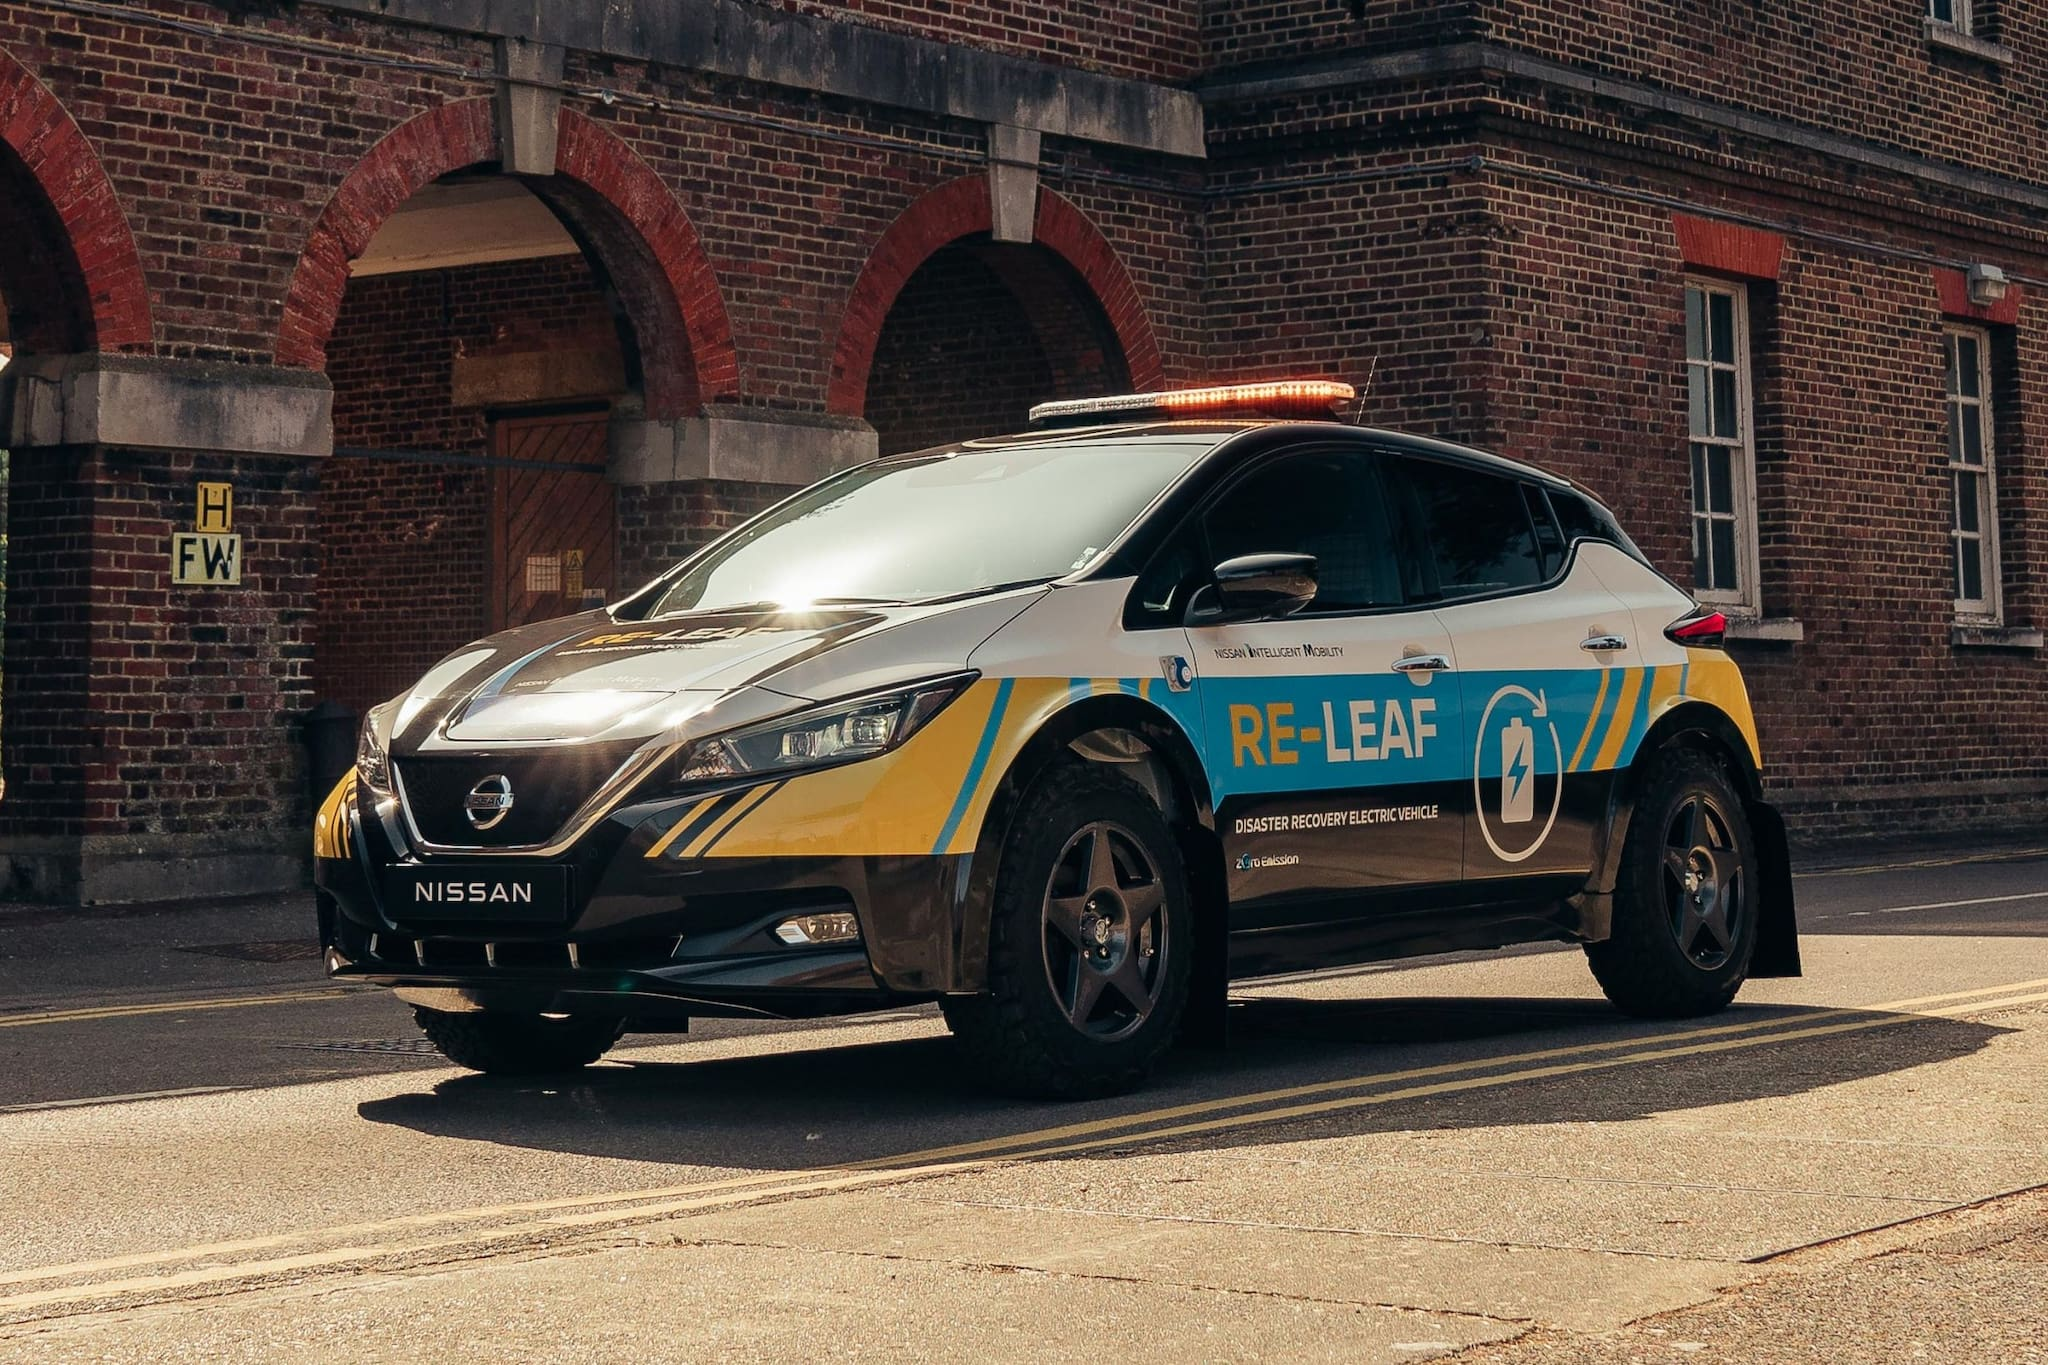 Nissan-RE-LEAF-body-photo-4